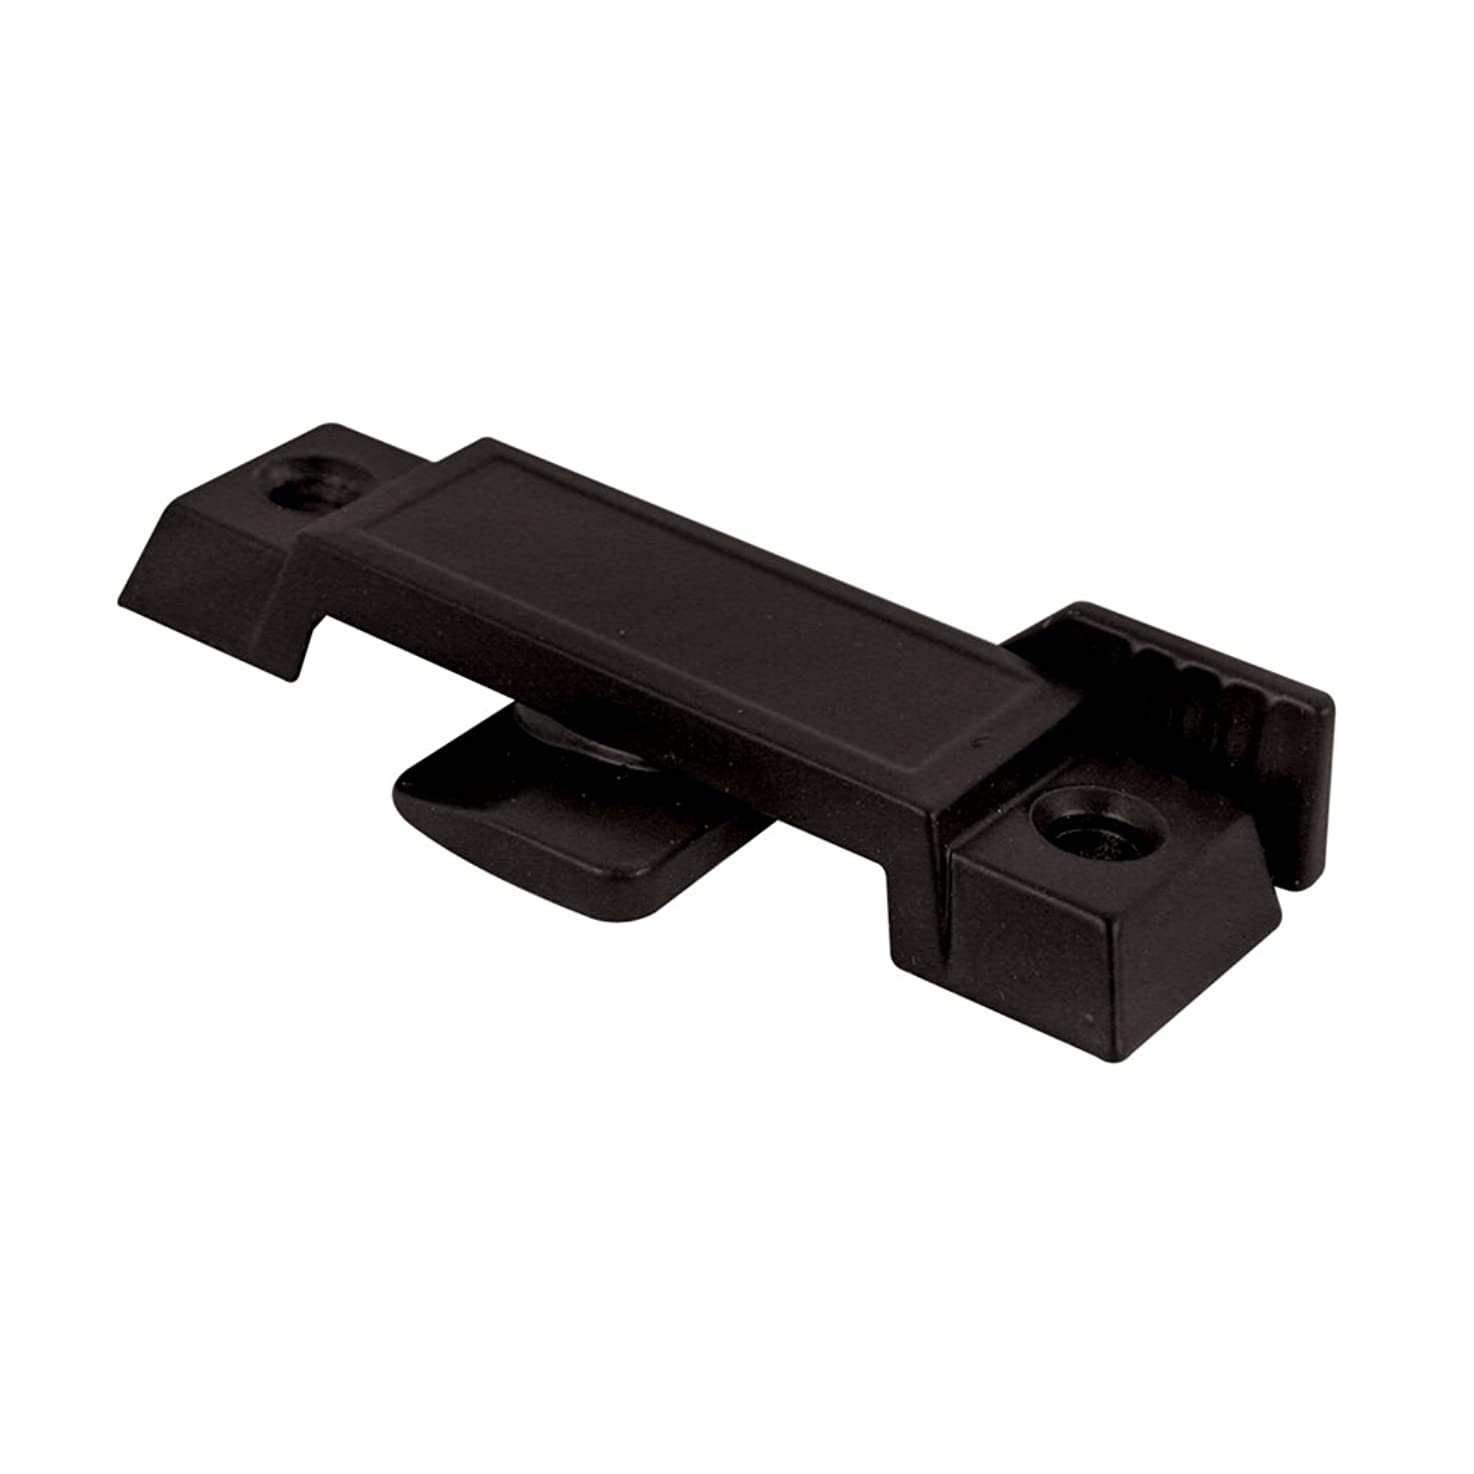 Prime-Line Products F 2591 Cam Action Window Sash Lock with 5/8-Inch Tongue, Black